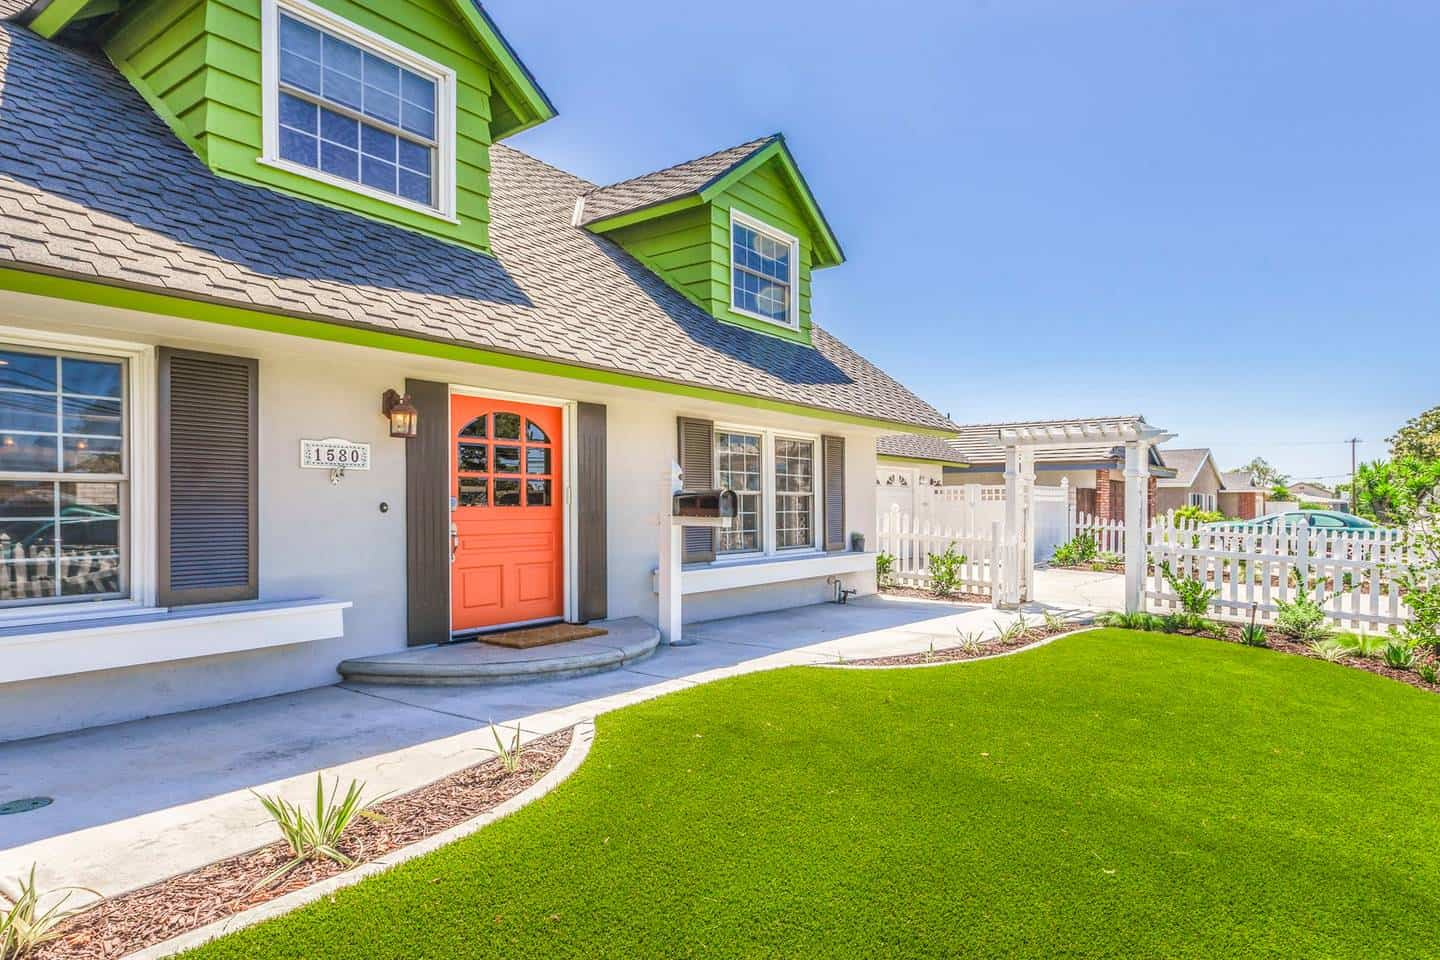 Stunning! White picket fence home is a dreamy Airbnb in Anaheim